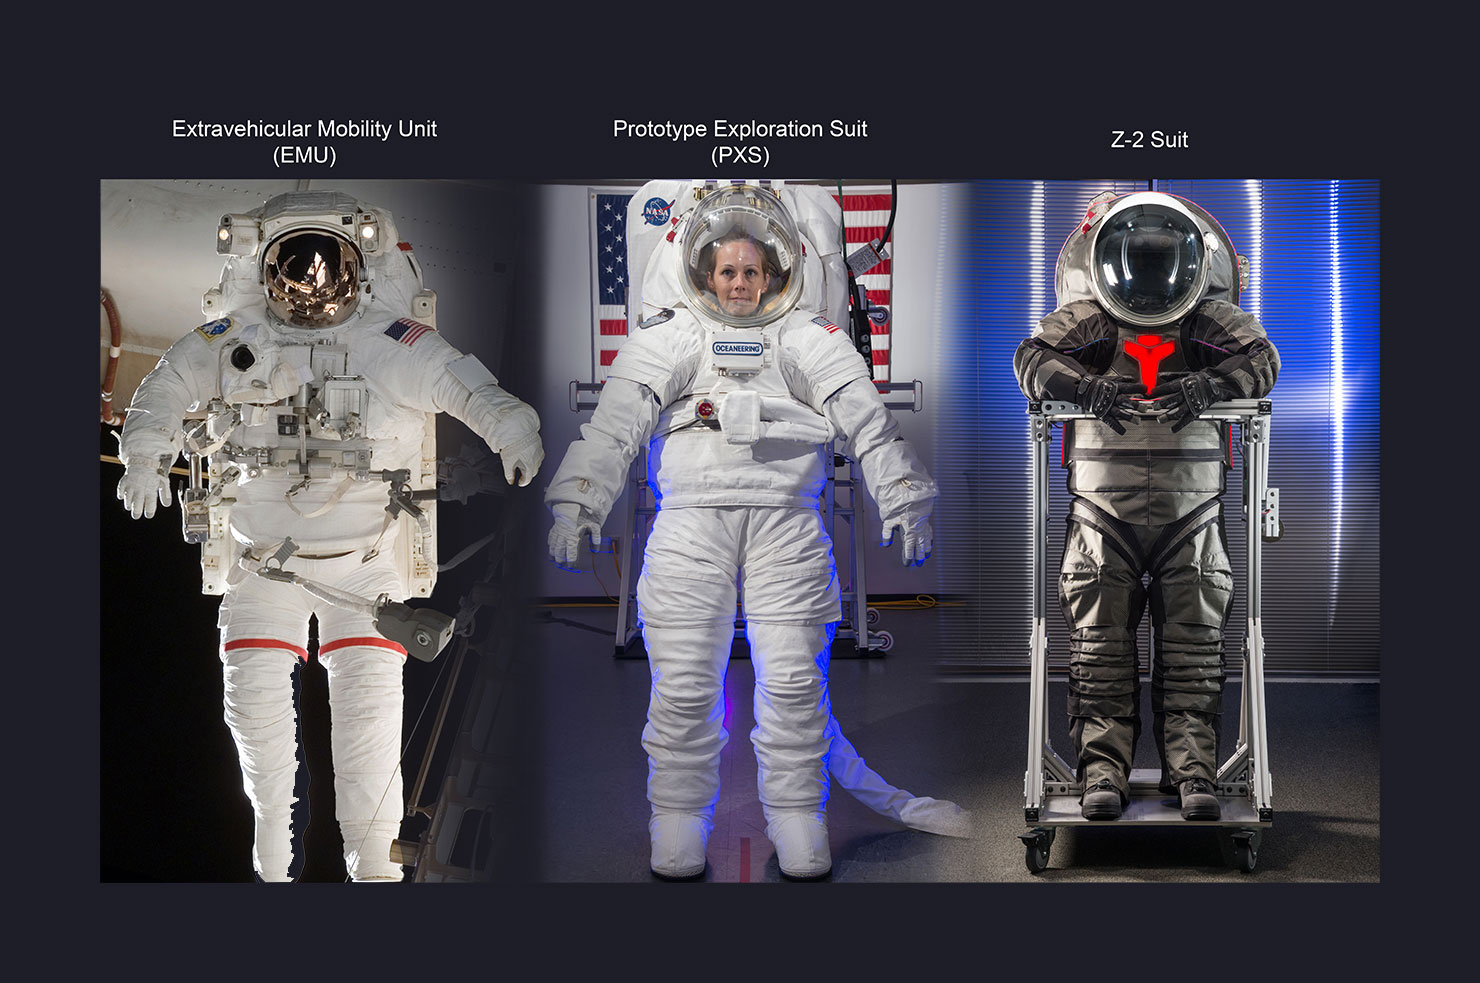 The Next Generation Of Suit Technologies